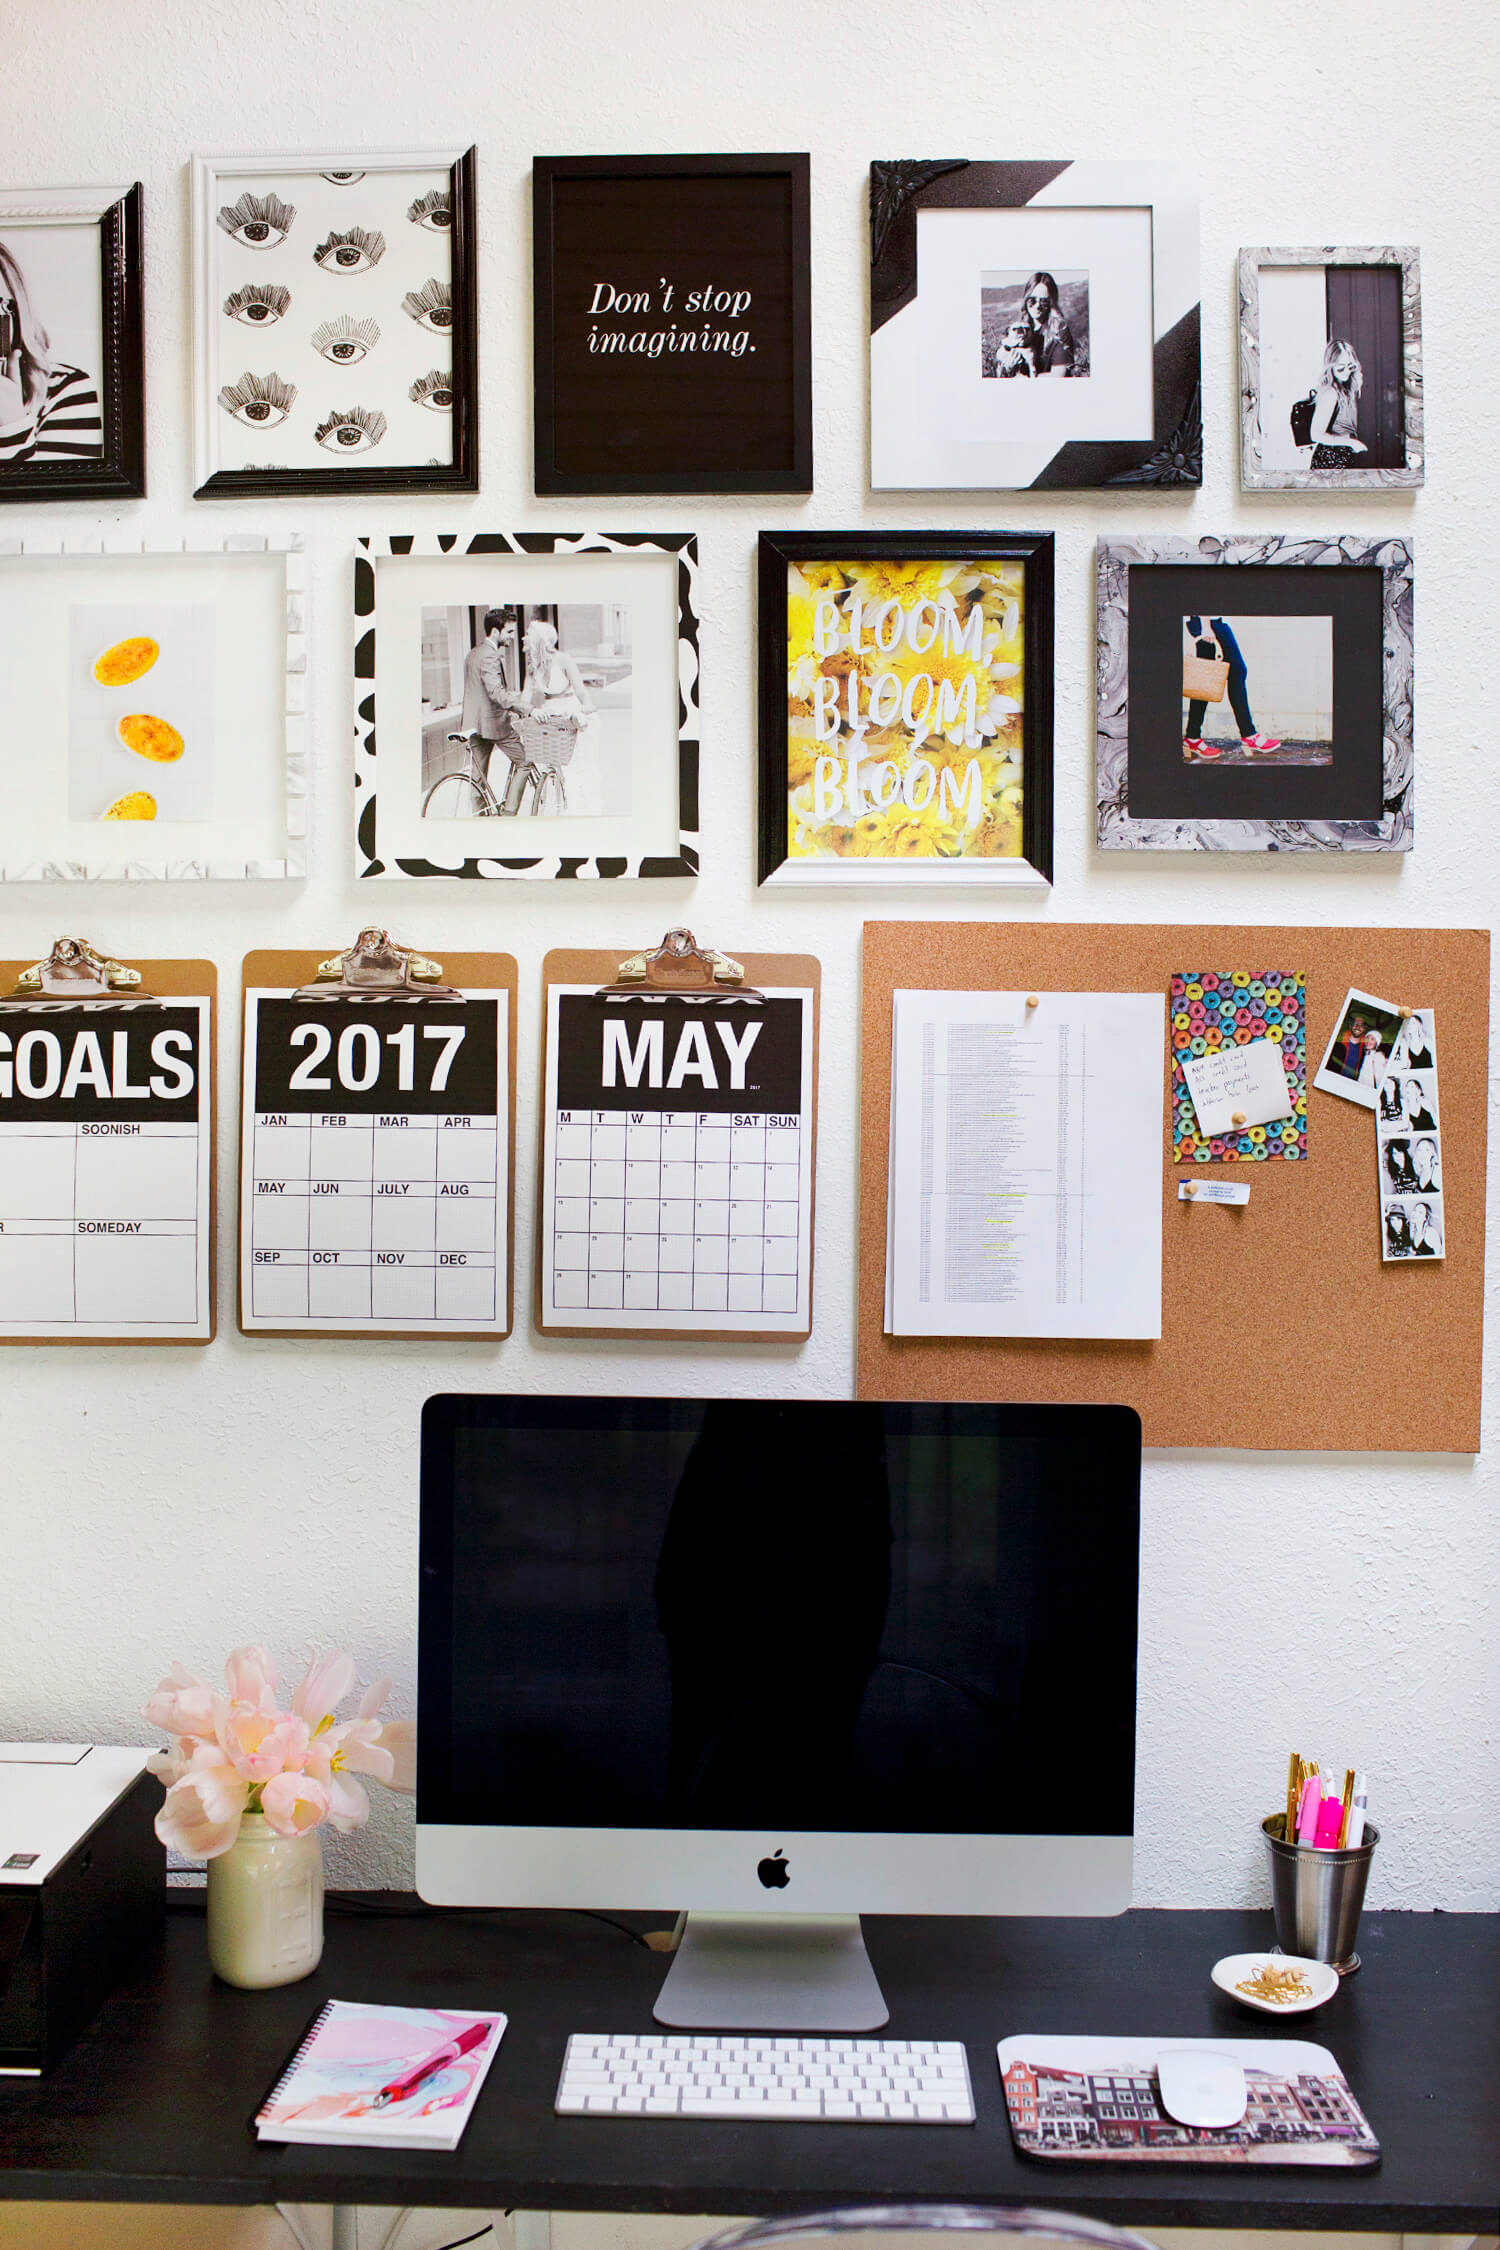 5 Ways to Update an Old Photo Frame (via fitness-4all.com)